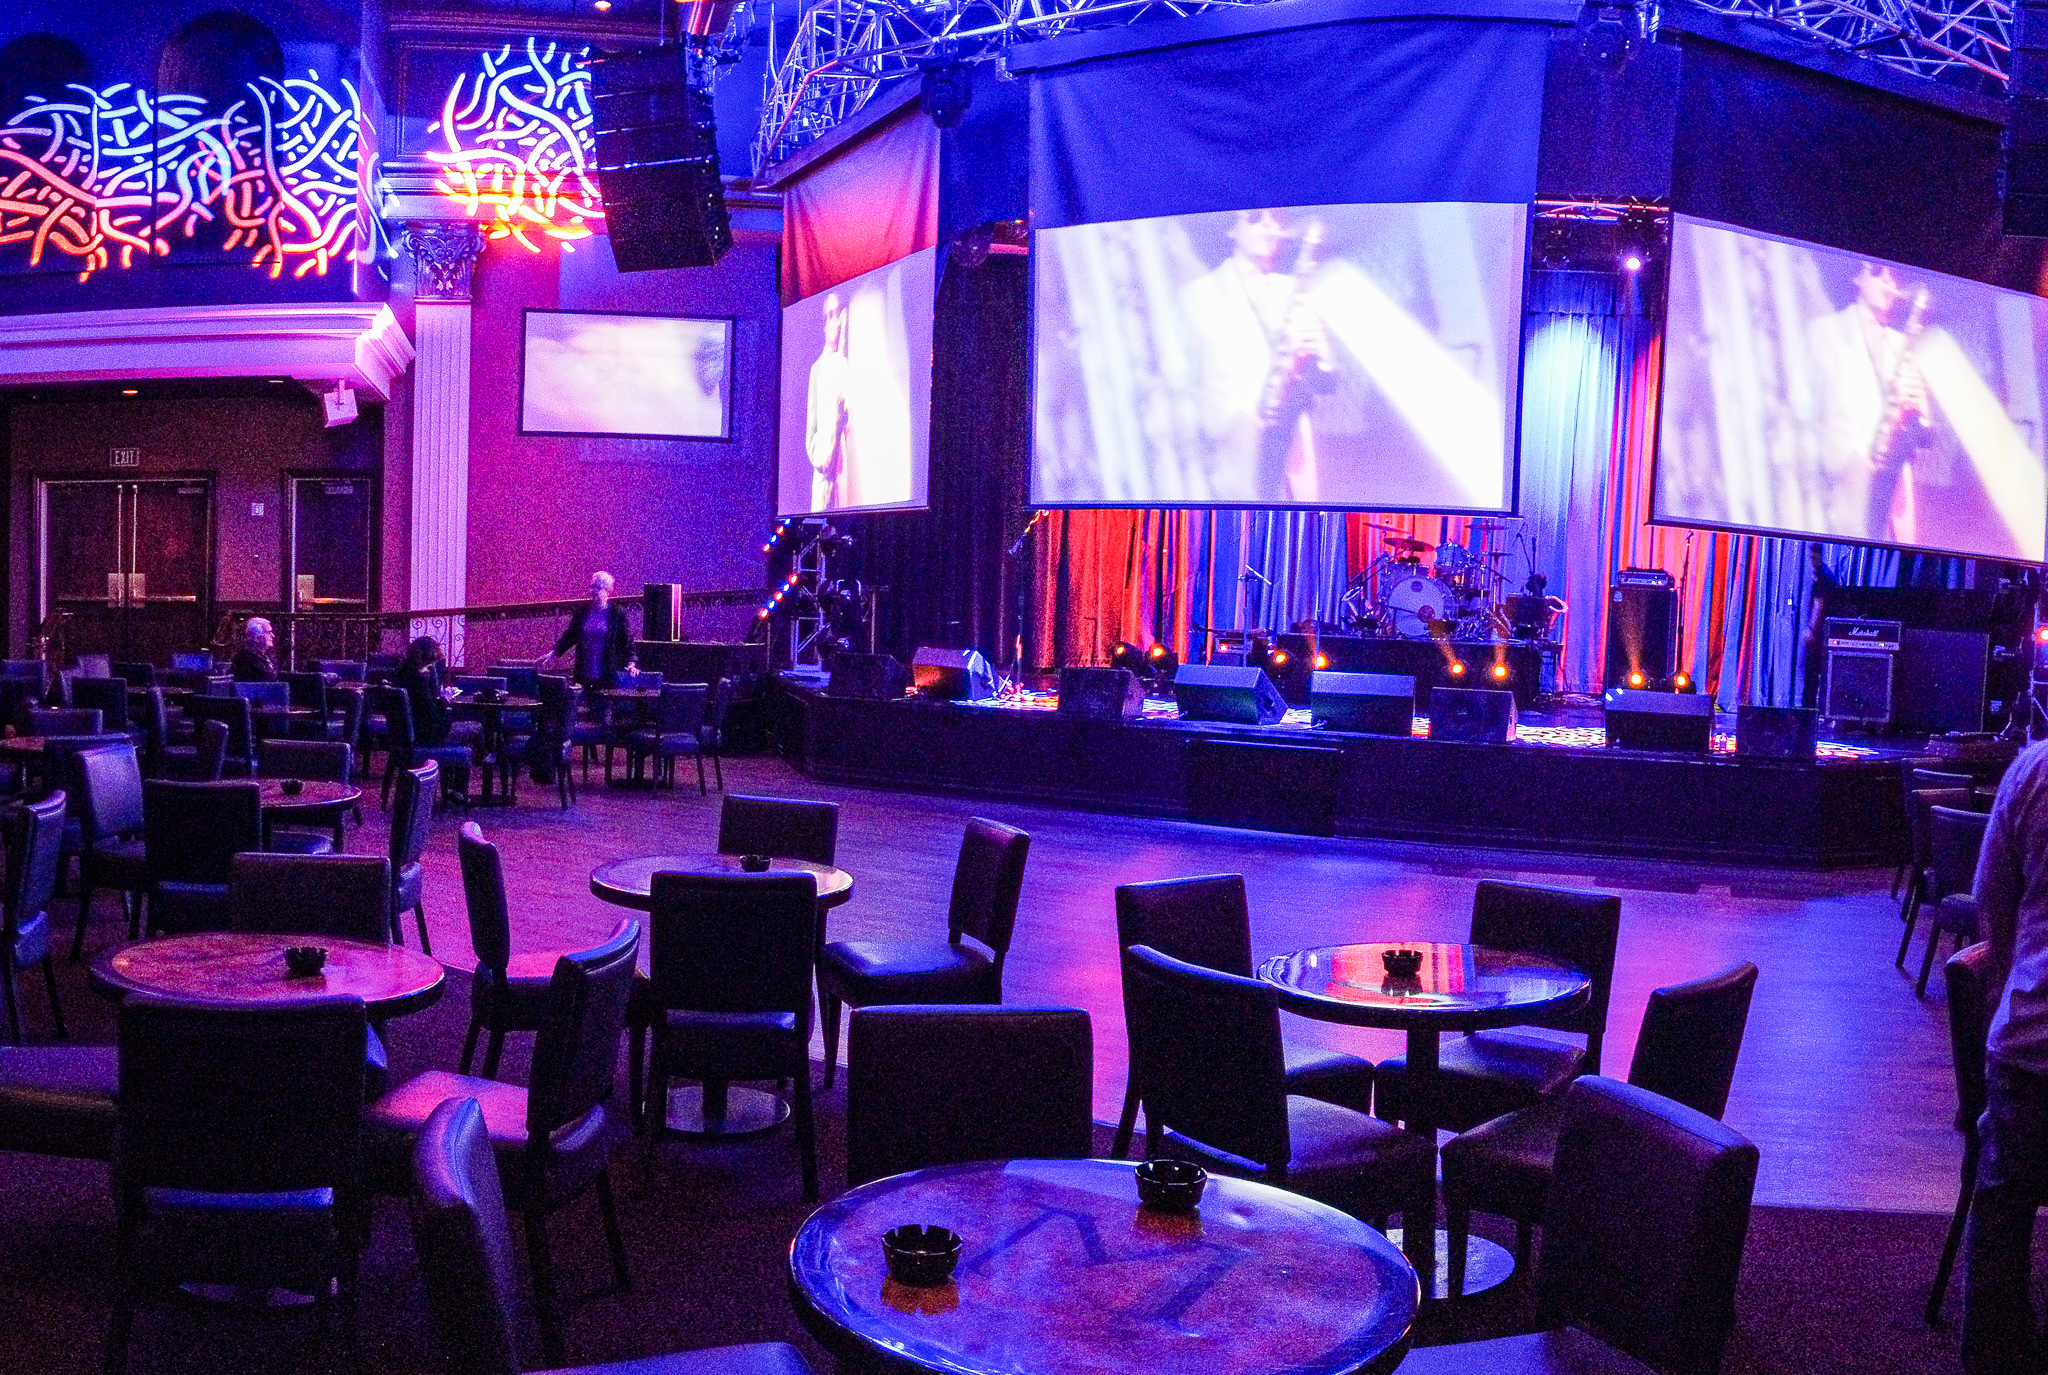 a photo of club madrid wit blue and purple lighting